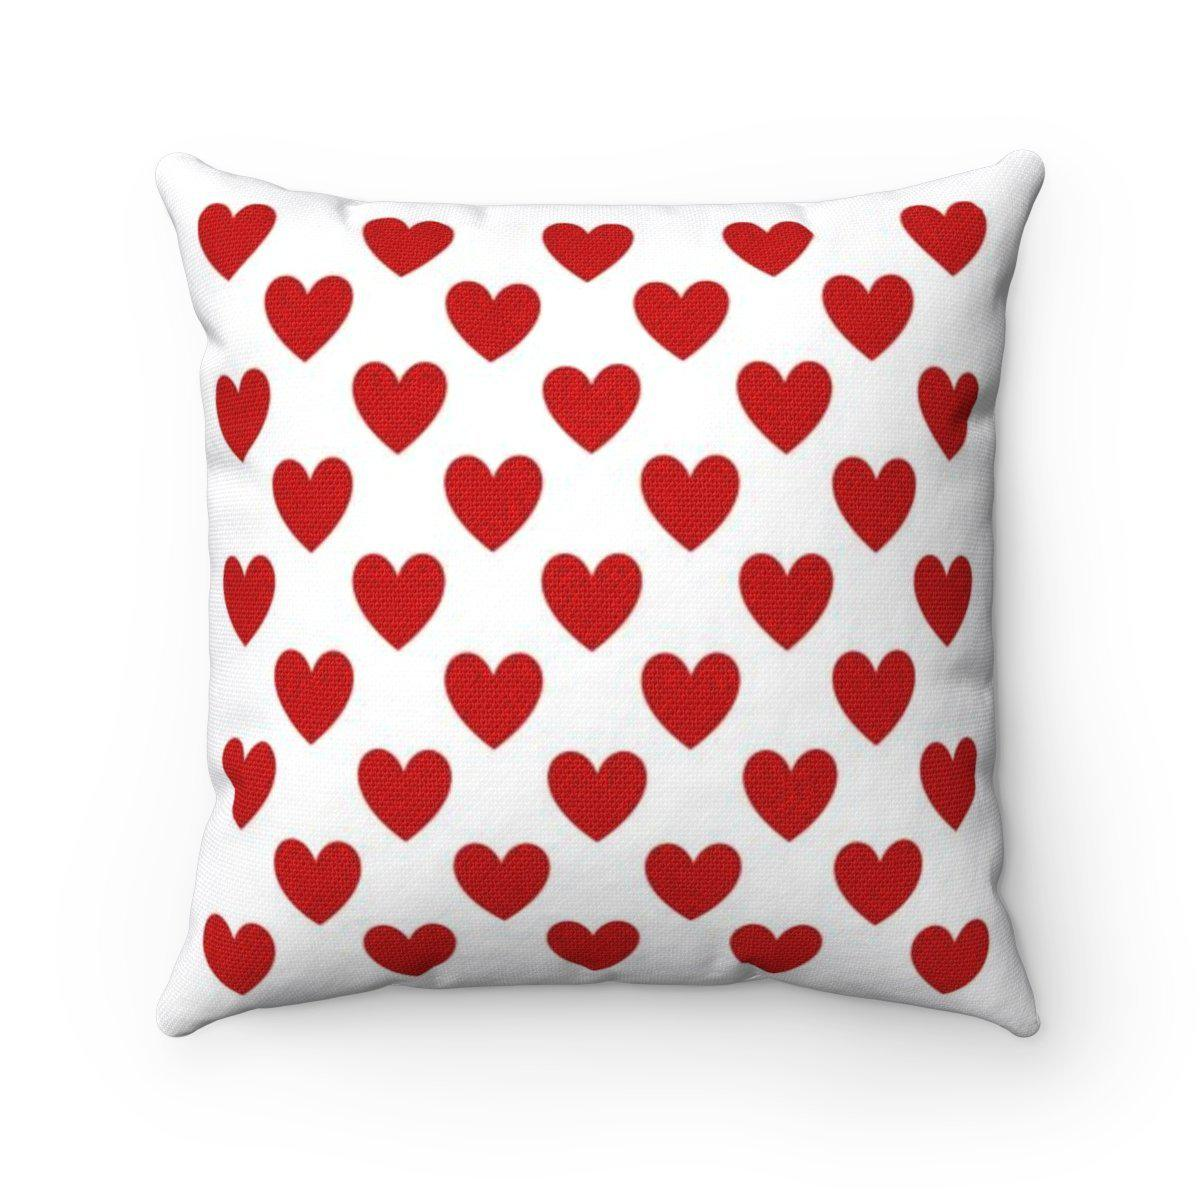 Love | Romantic | Valentine Hearts decorative cushion cover-Home Decor - Decorative Accents - Pillows & Throws - Decorative Pillows-Maison d'Elite-Très Elite